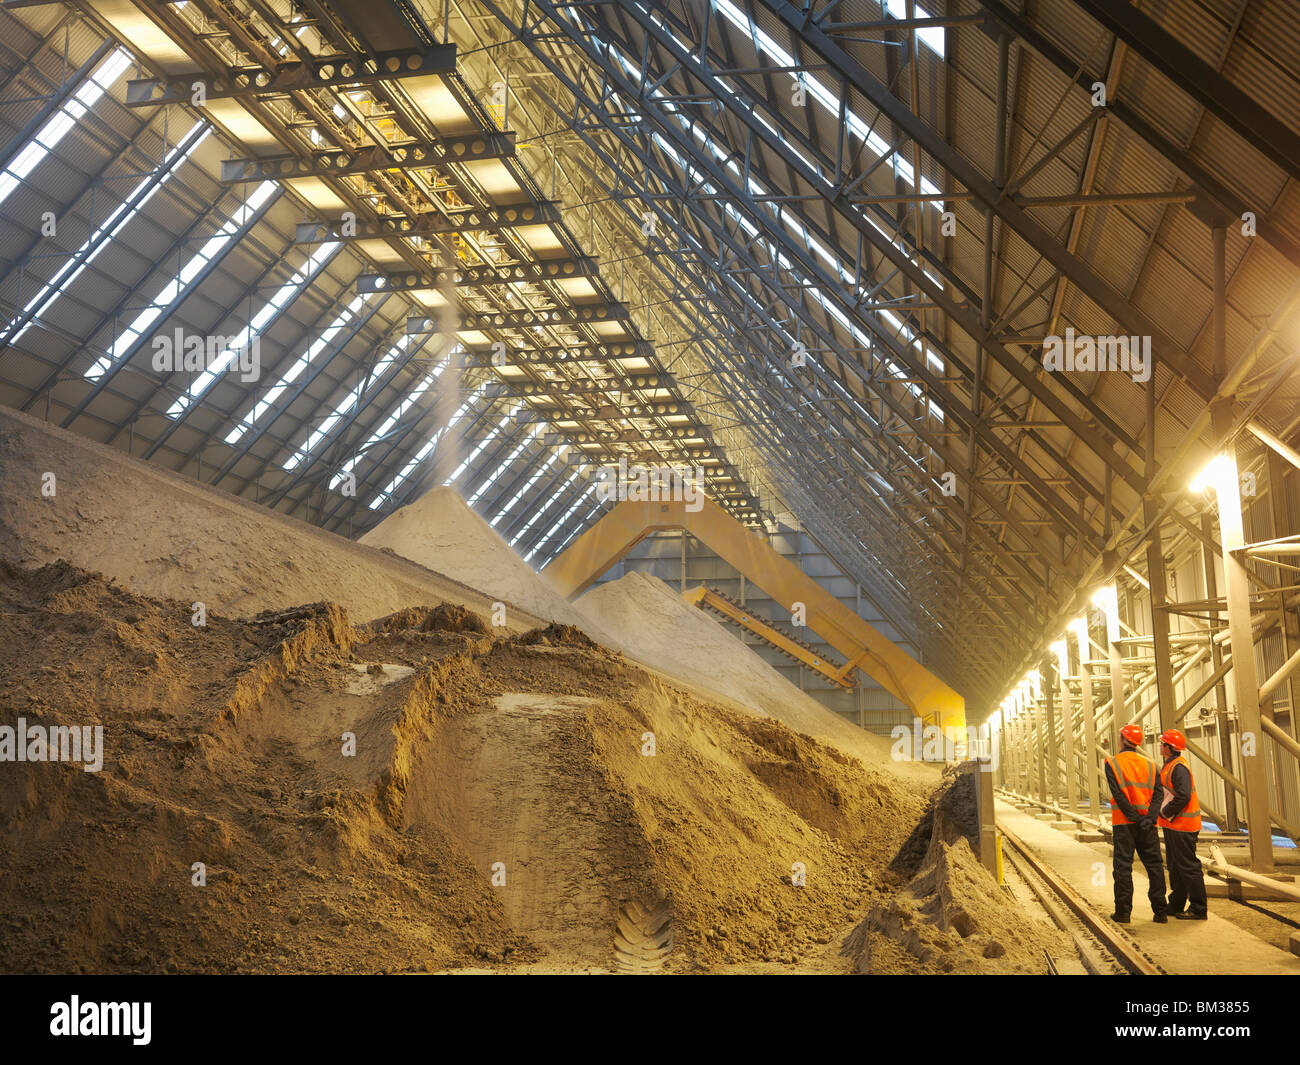 Workers Inspecting Gypsum Store - Stock Image